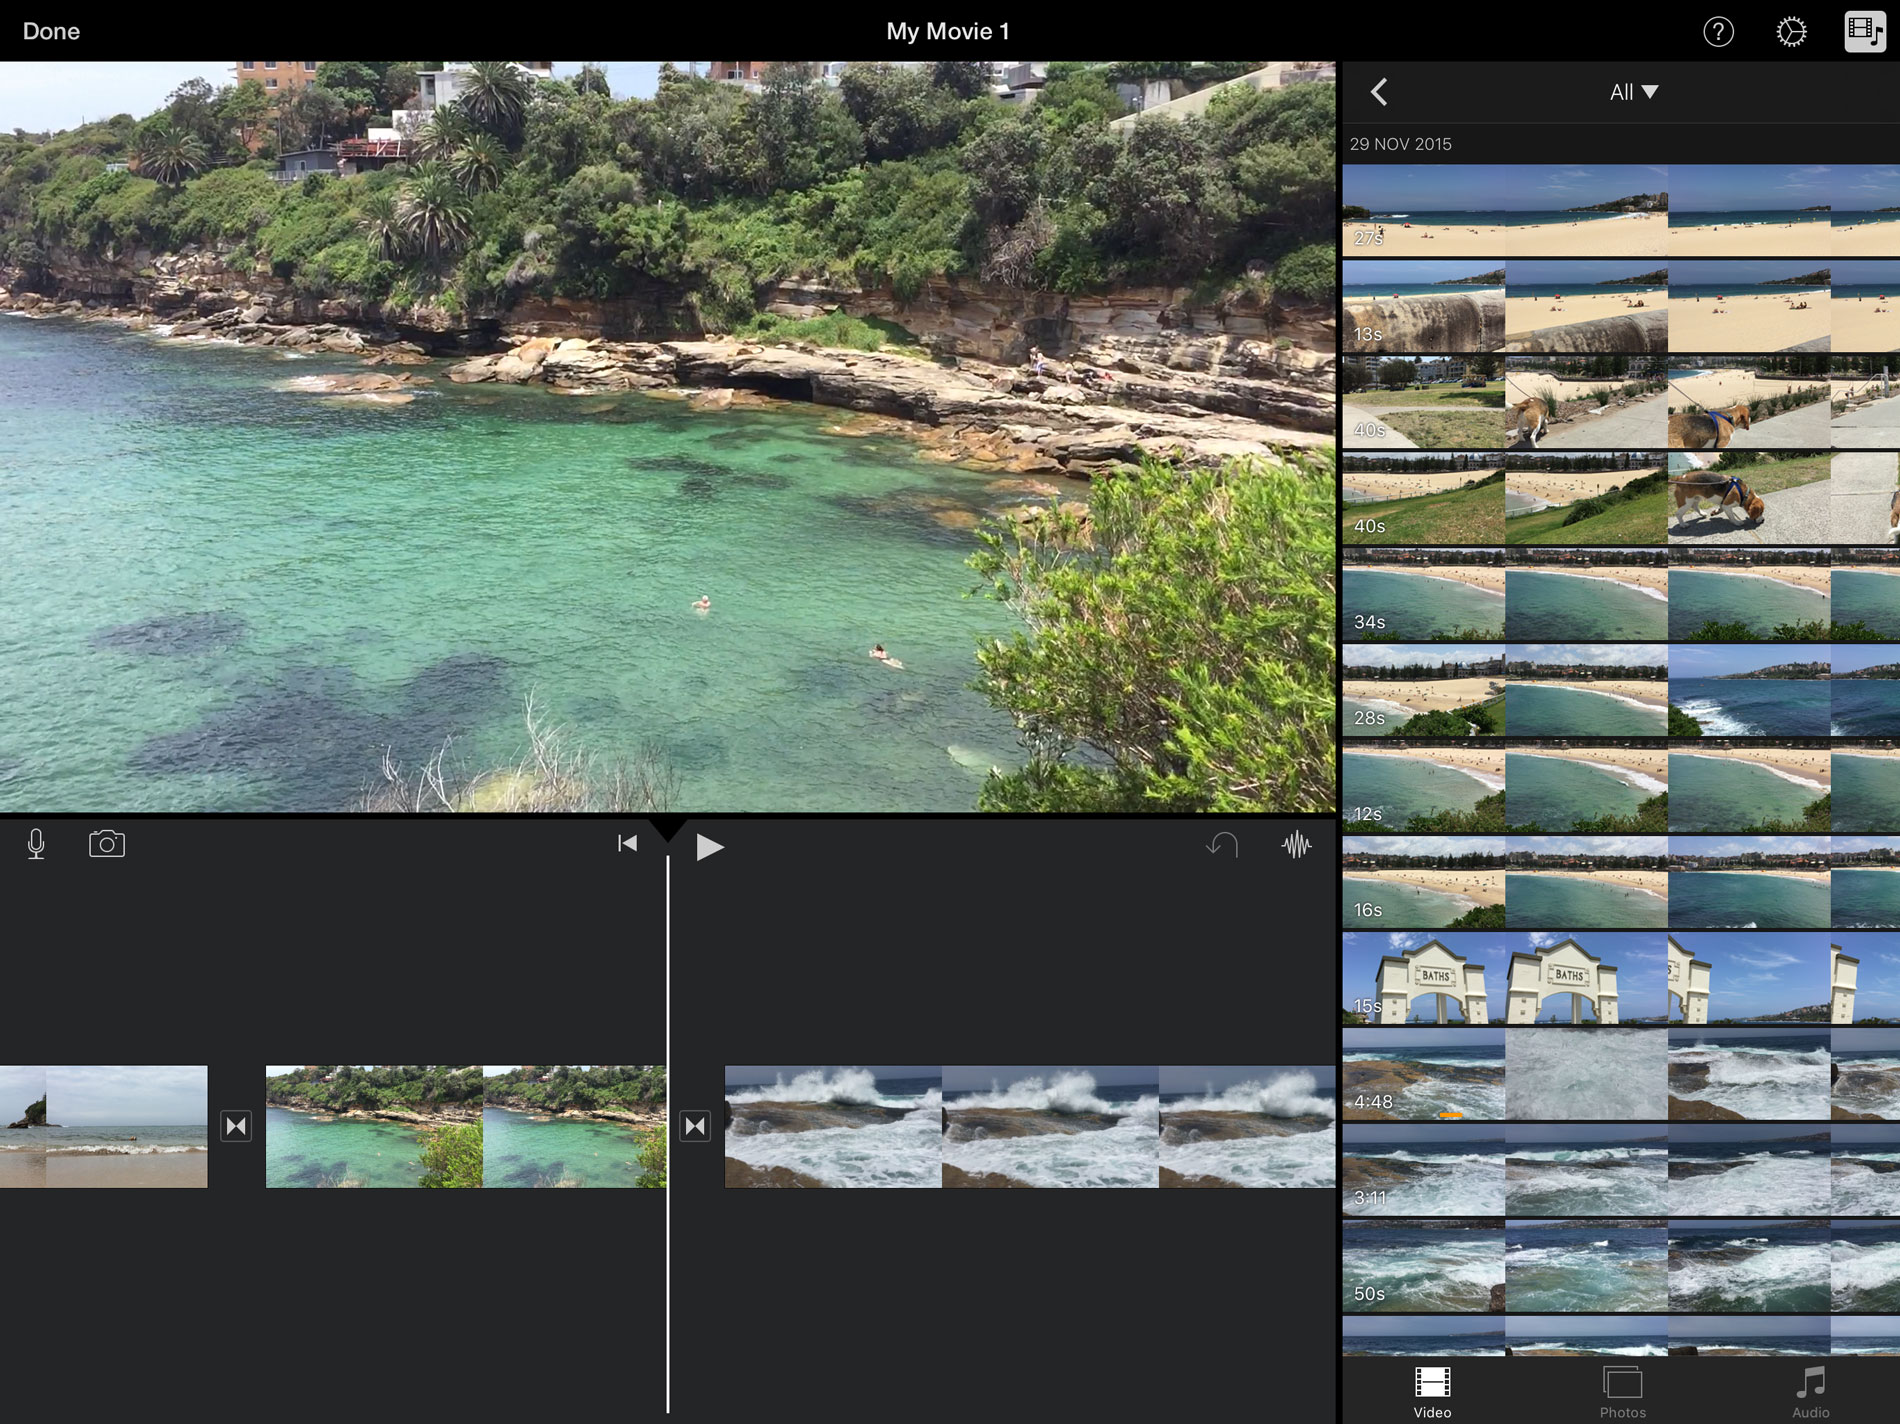 iPad Pro Video Editing in iMovie